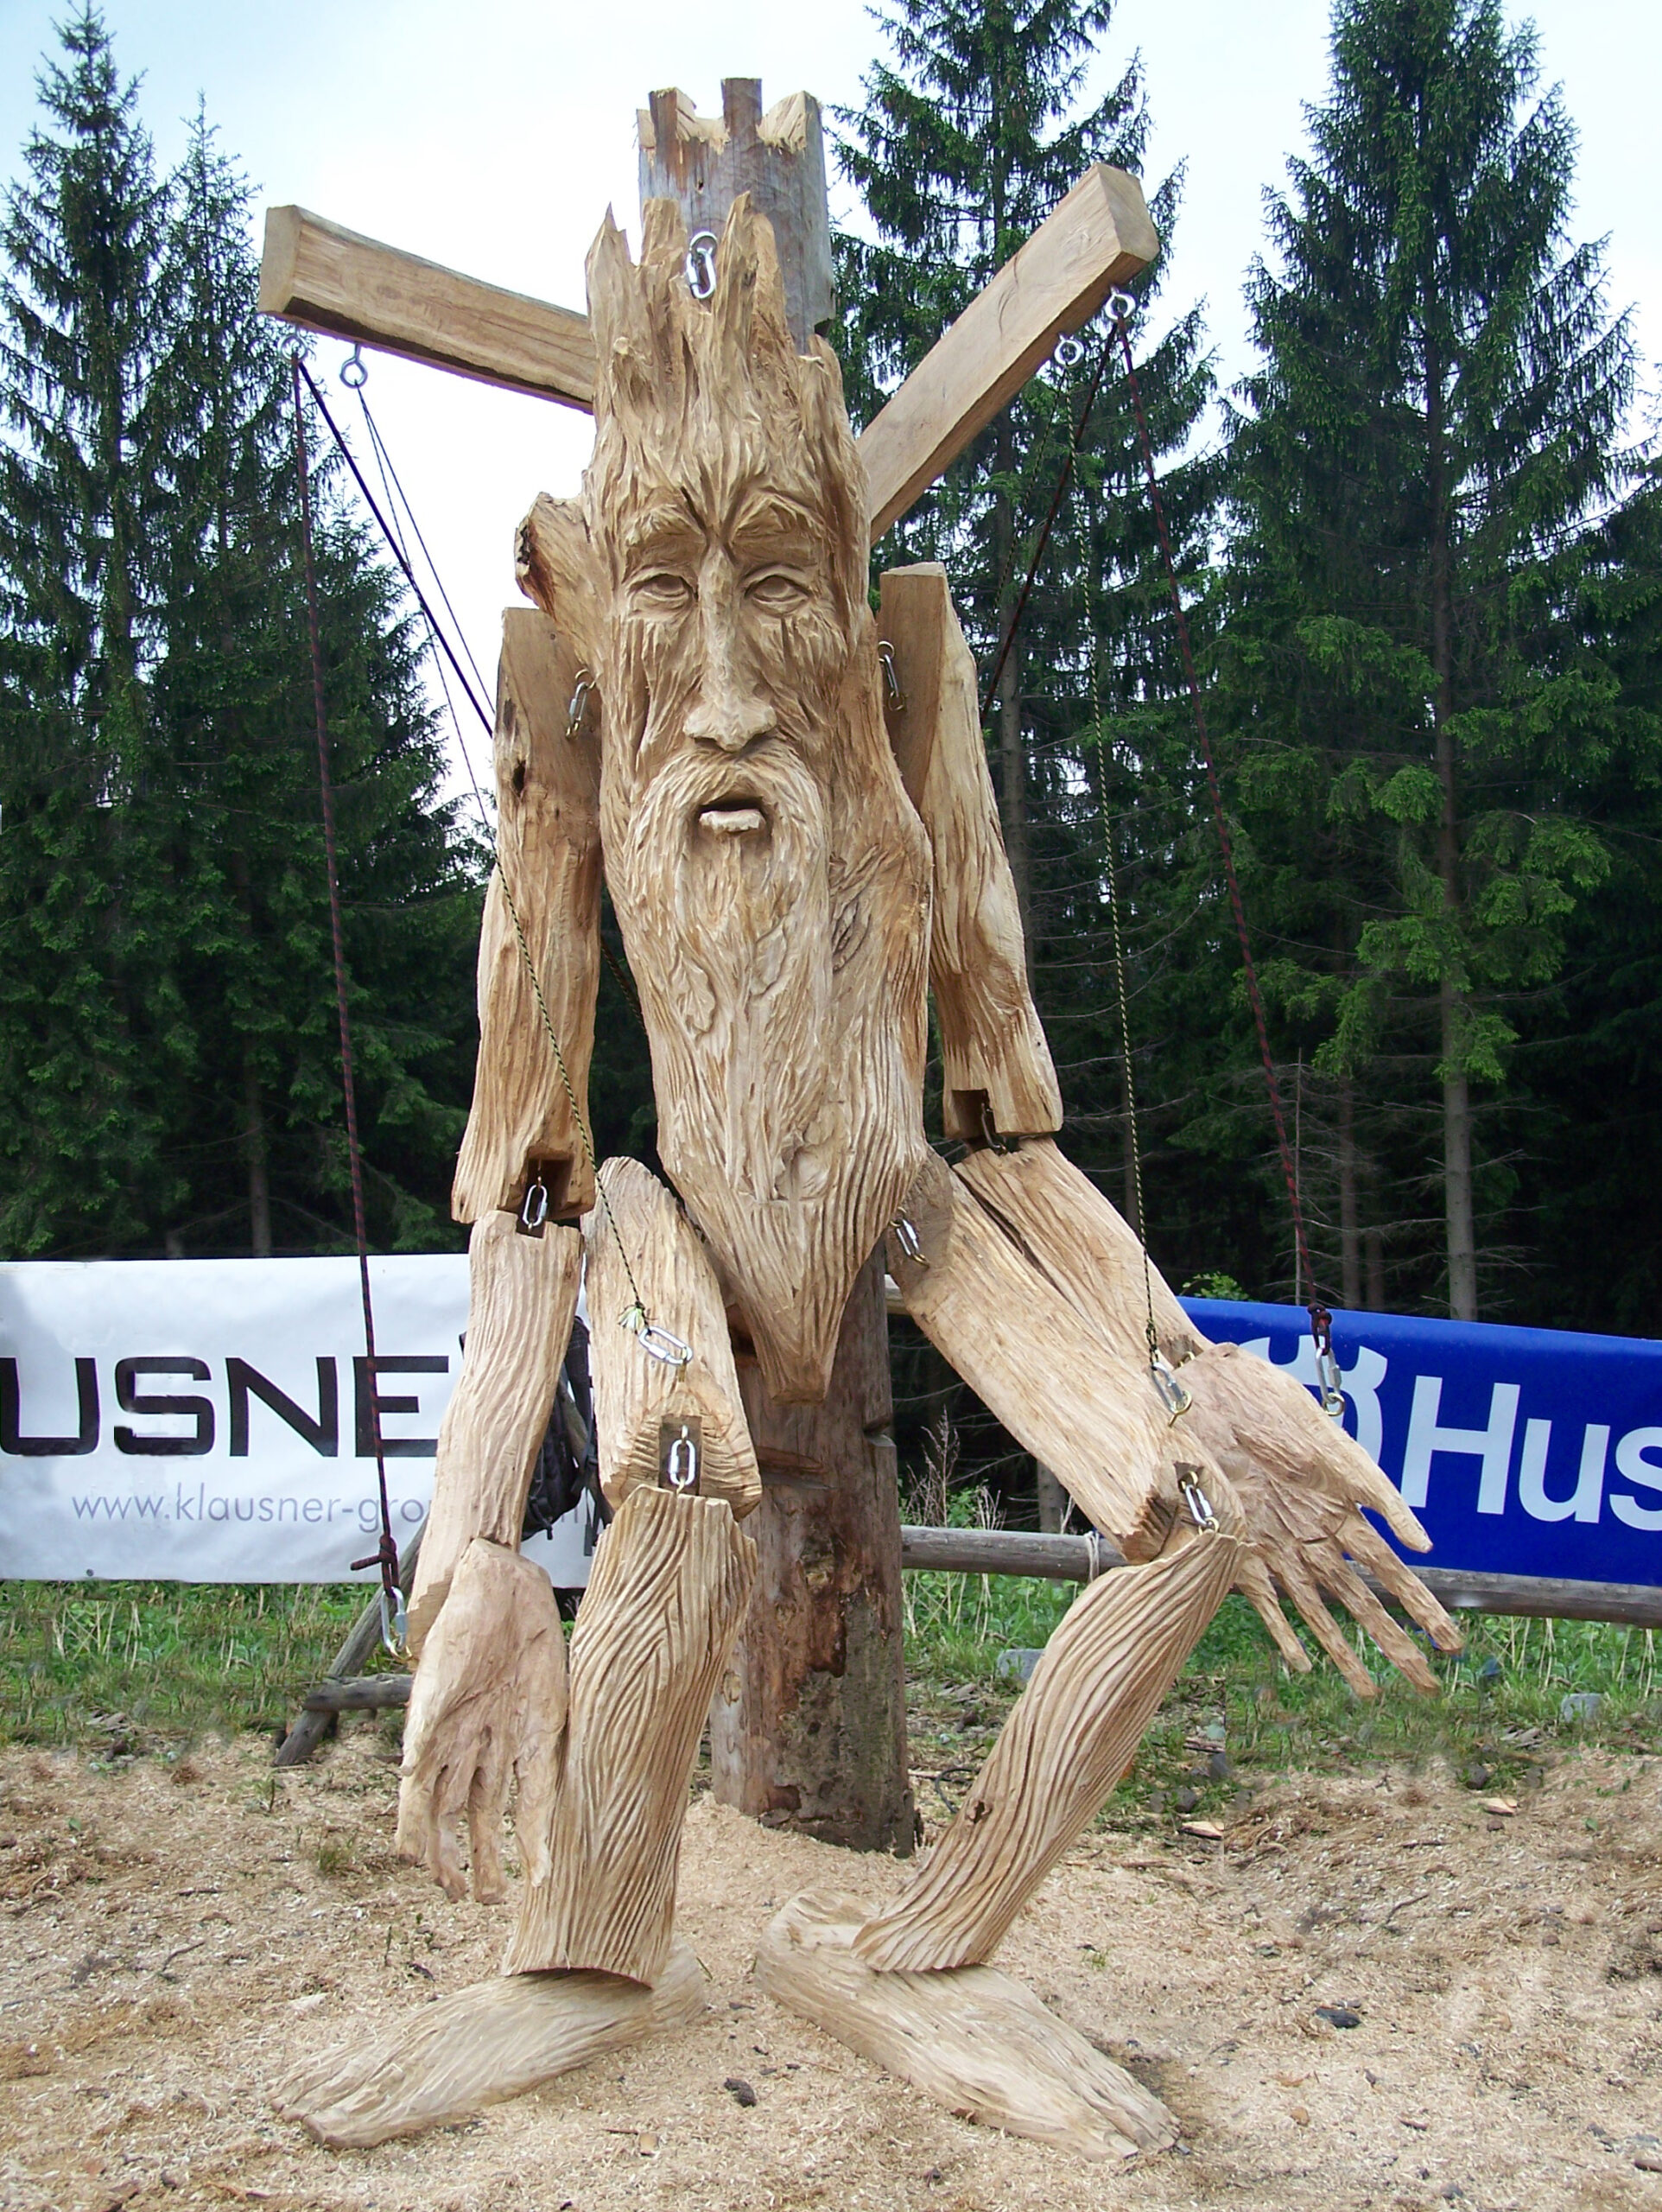 Huskycup through the years - 2007. A giant marionette created in oak by chainsaw carver simon o'rourke